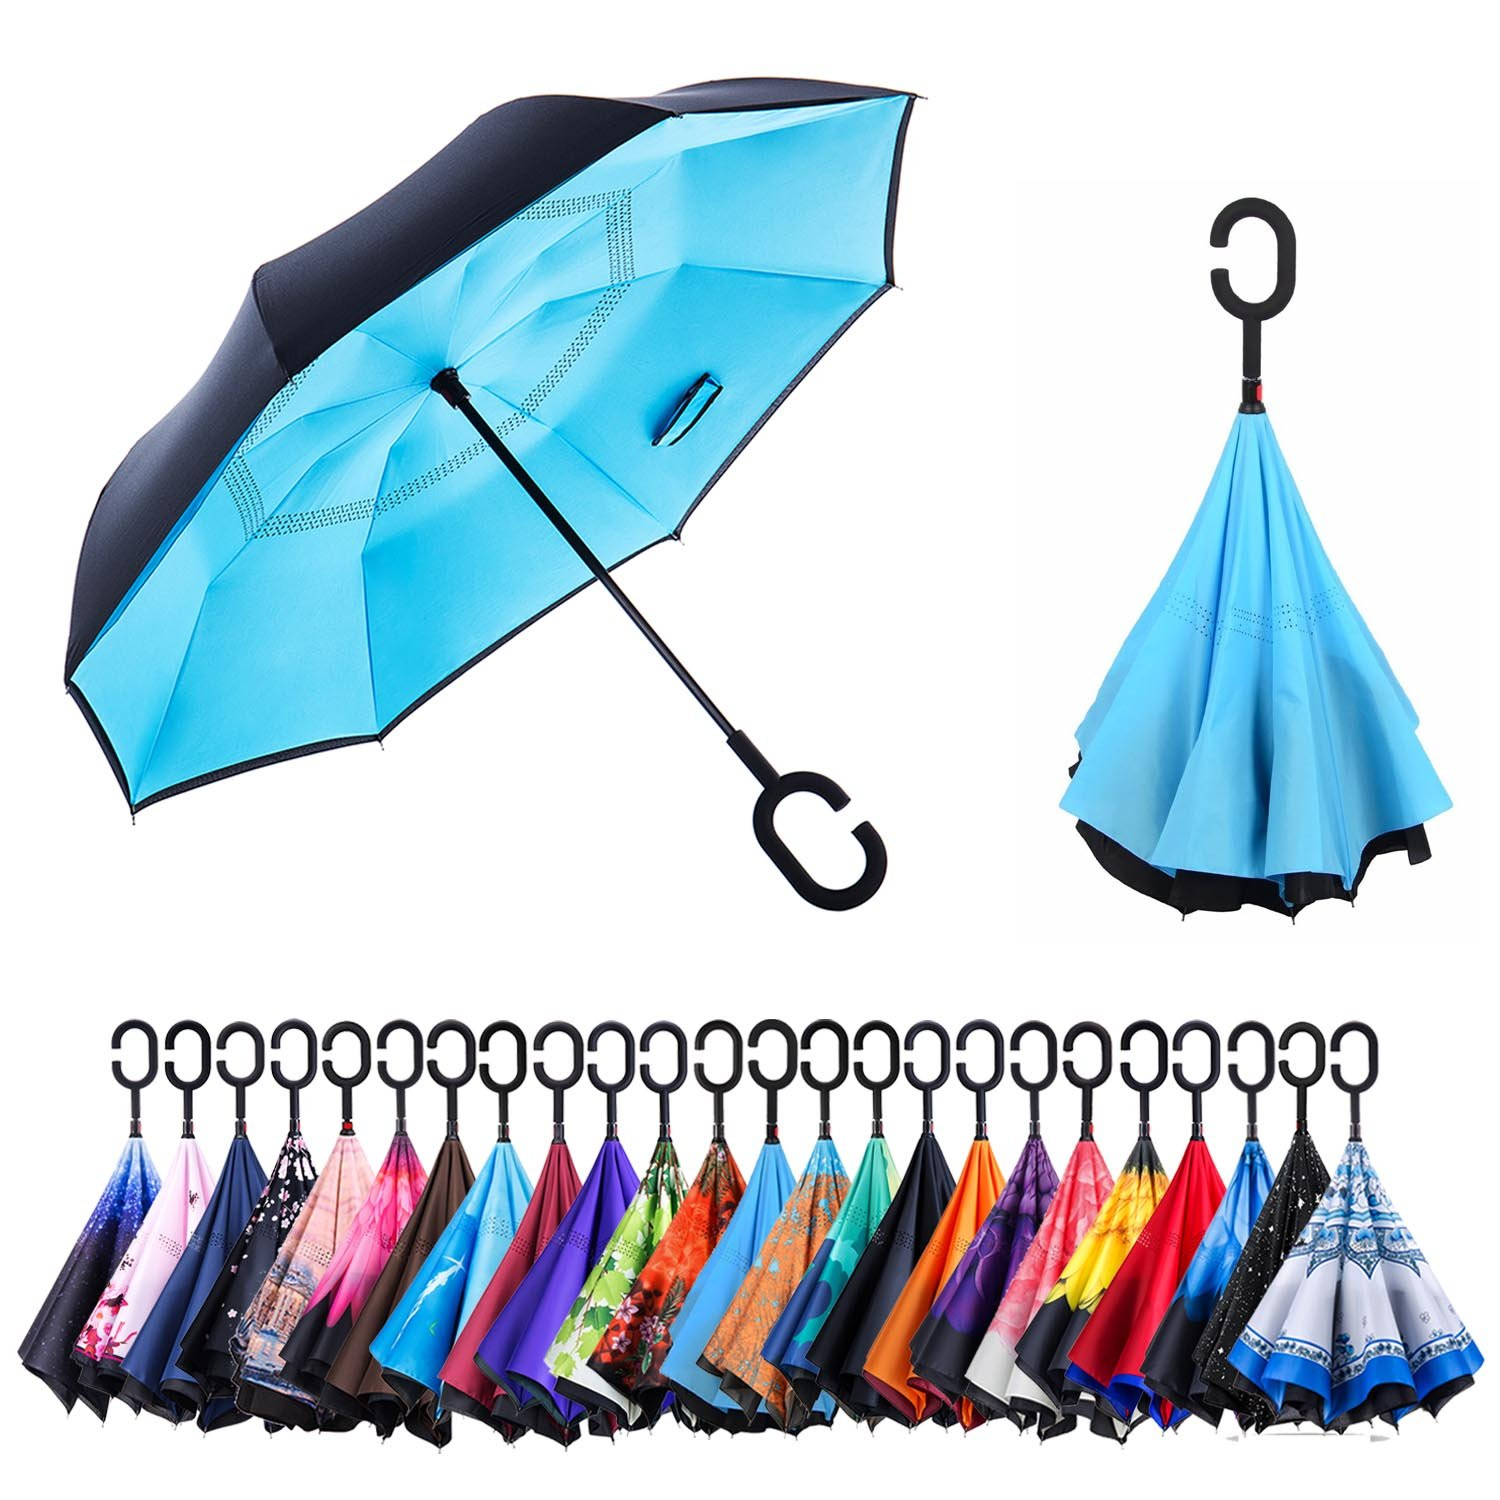 AmaGo Inverted Umbrella – Reverse Double Layer Long Umbrella, C-Shape Handle & Self-Stand to Spare Hands, Inside-Out Fold to Keep Cars & Drivers Dry, Carrying Bag for Easy Traveling Carrying Bag Easy Traveling